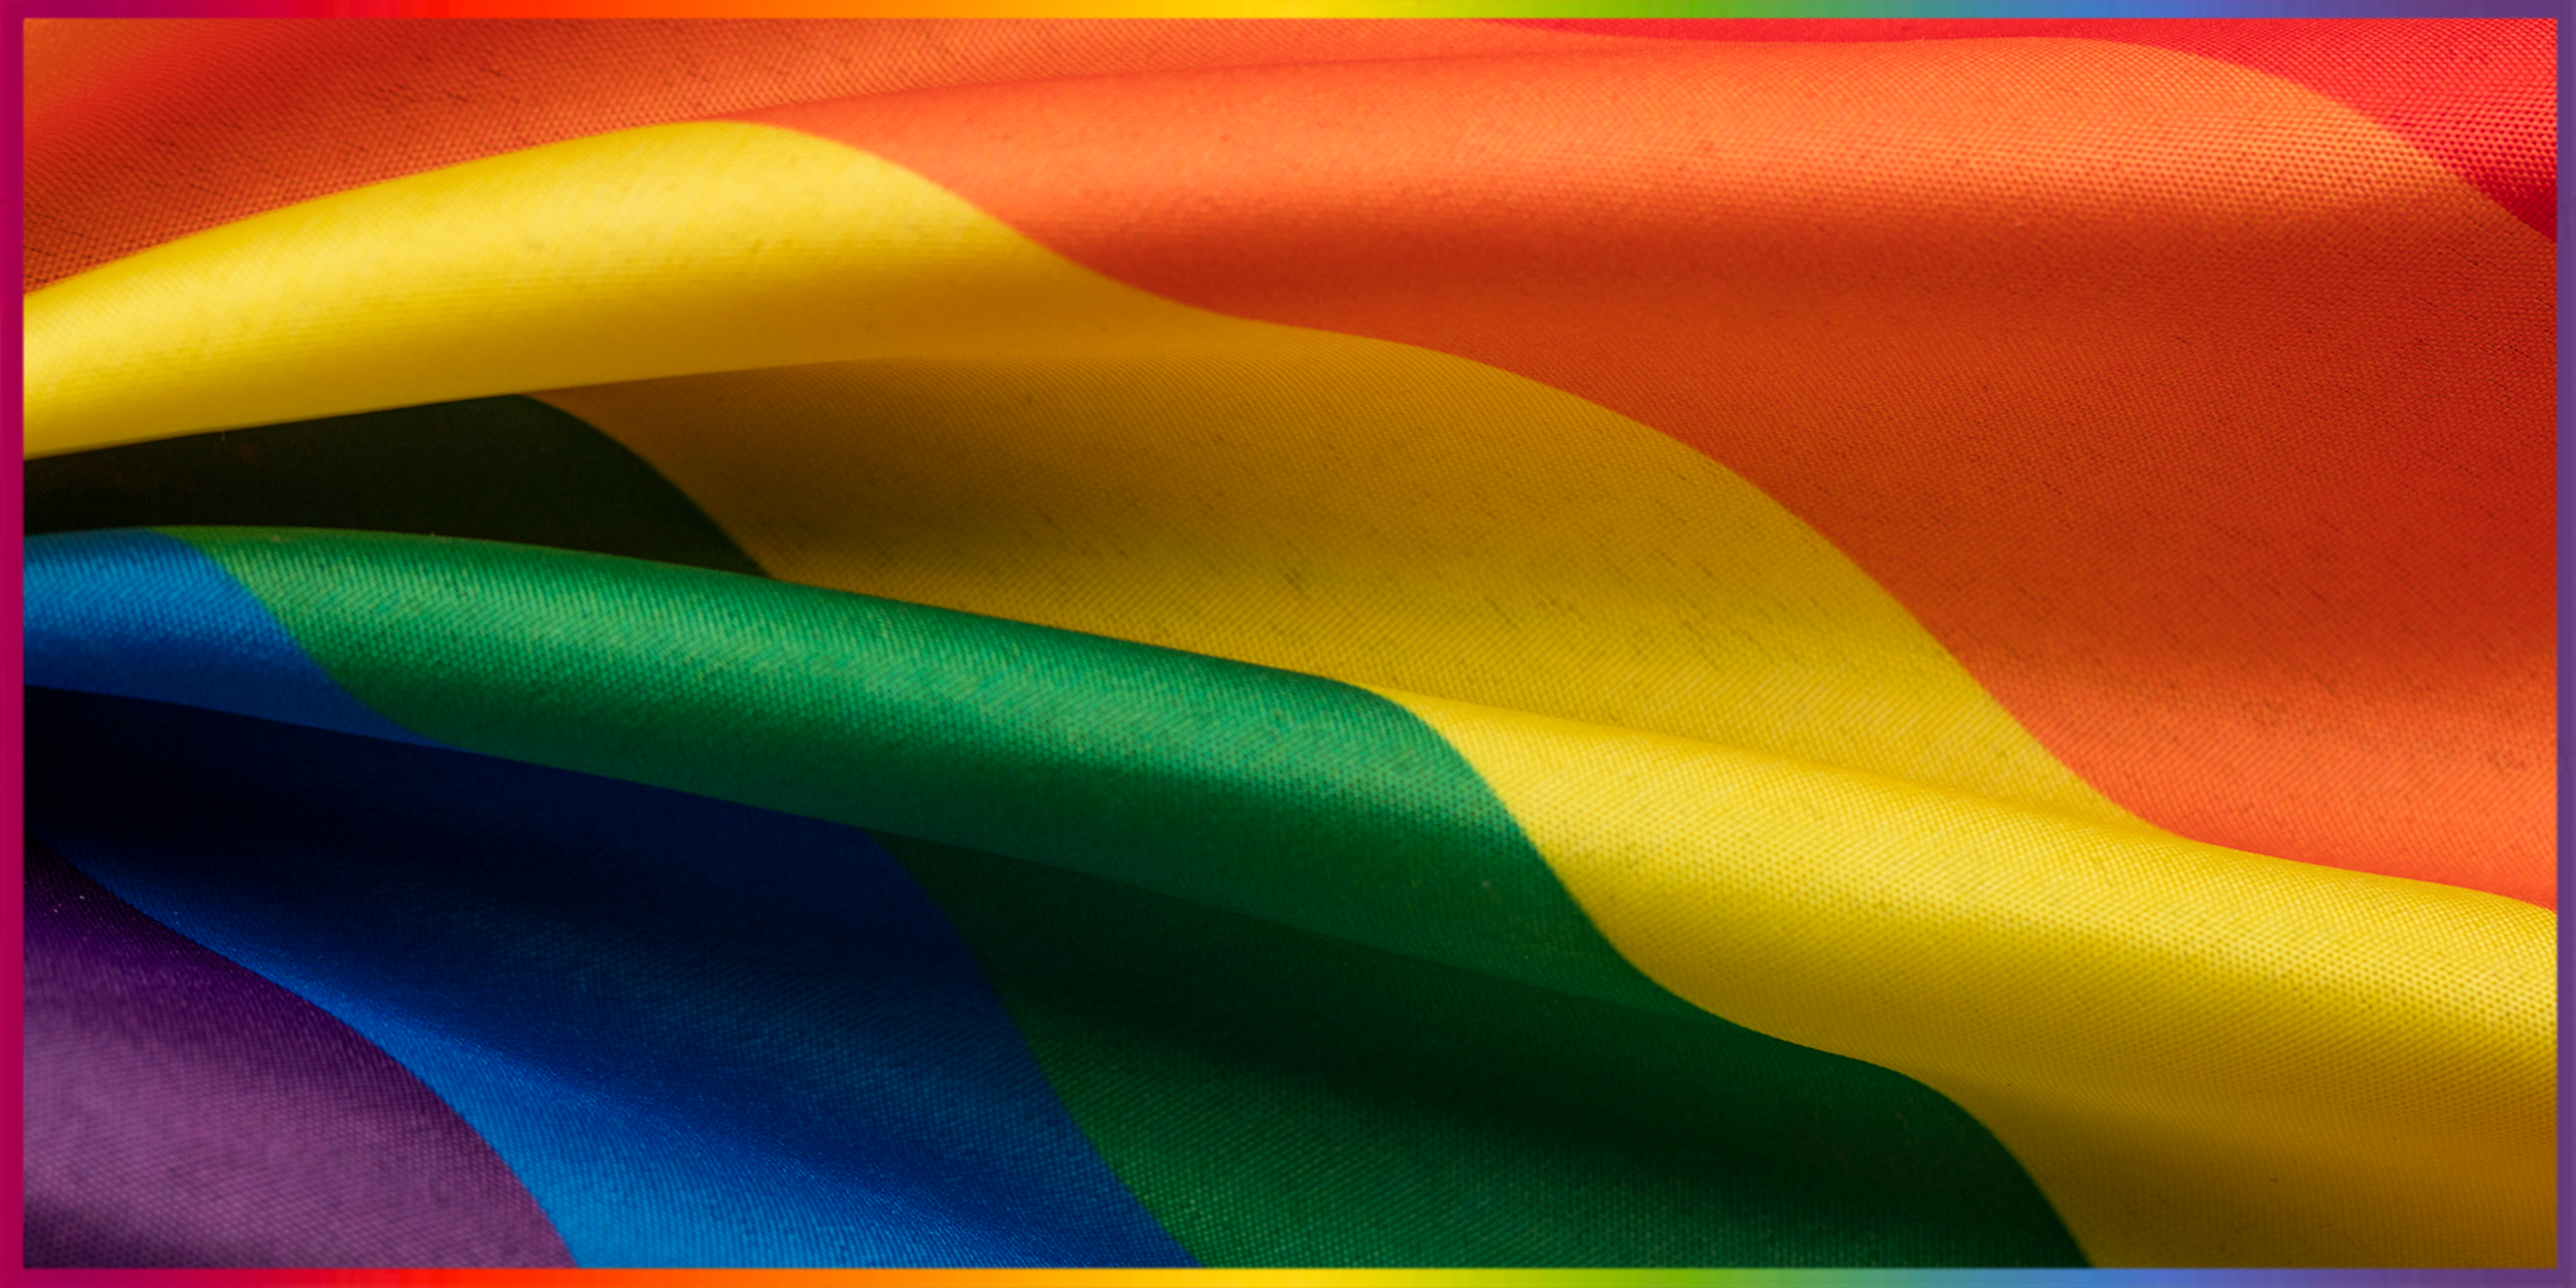 Pride Collections: Marketing Tactic or Beneficial?